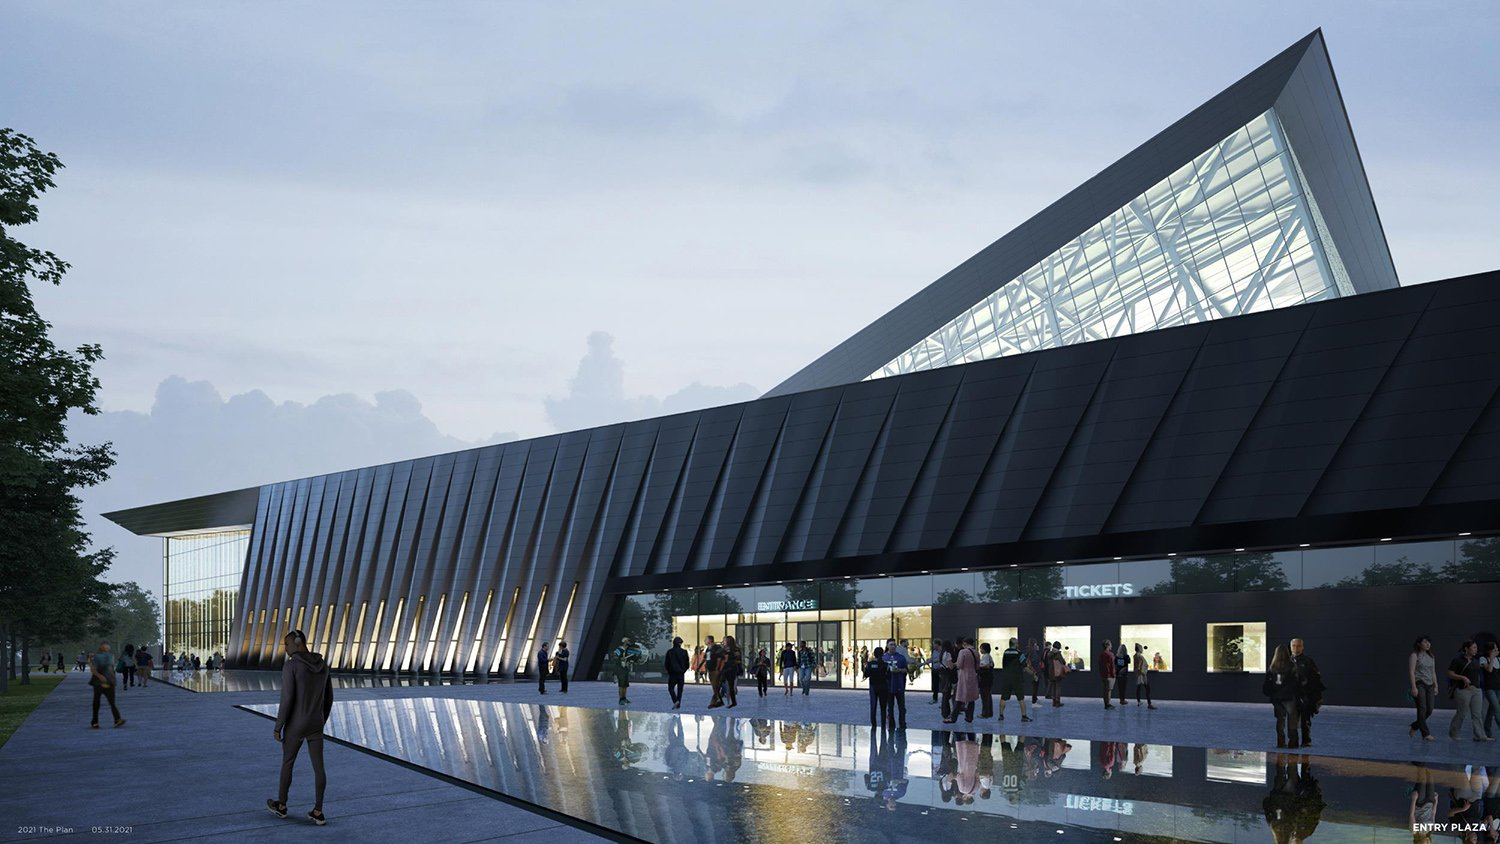 ENTRY PLAZA POPULOUS